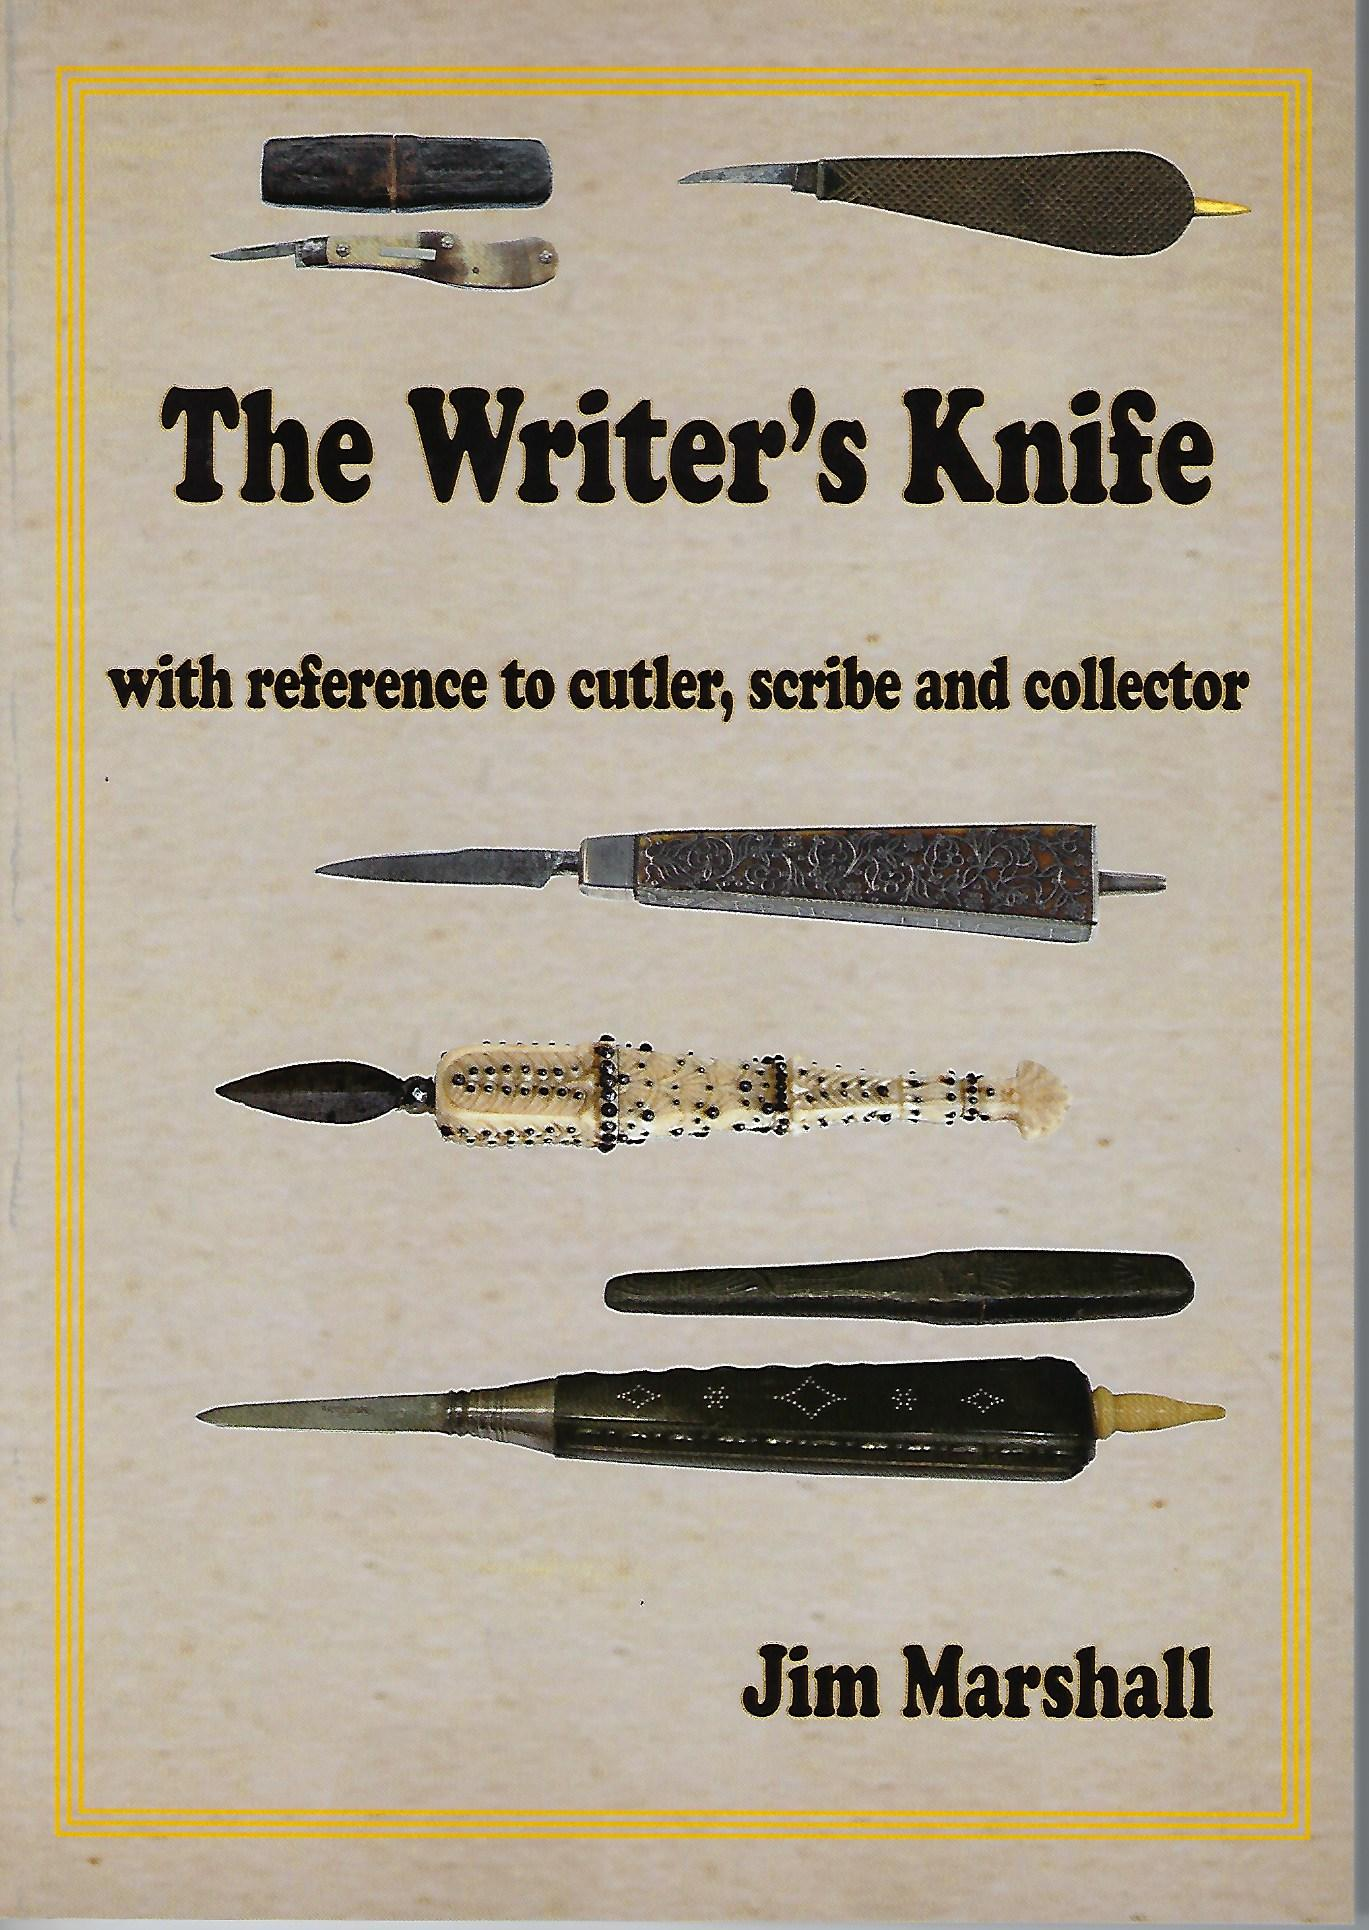 The Writer's Knife